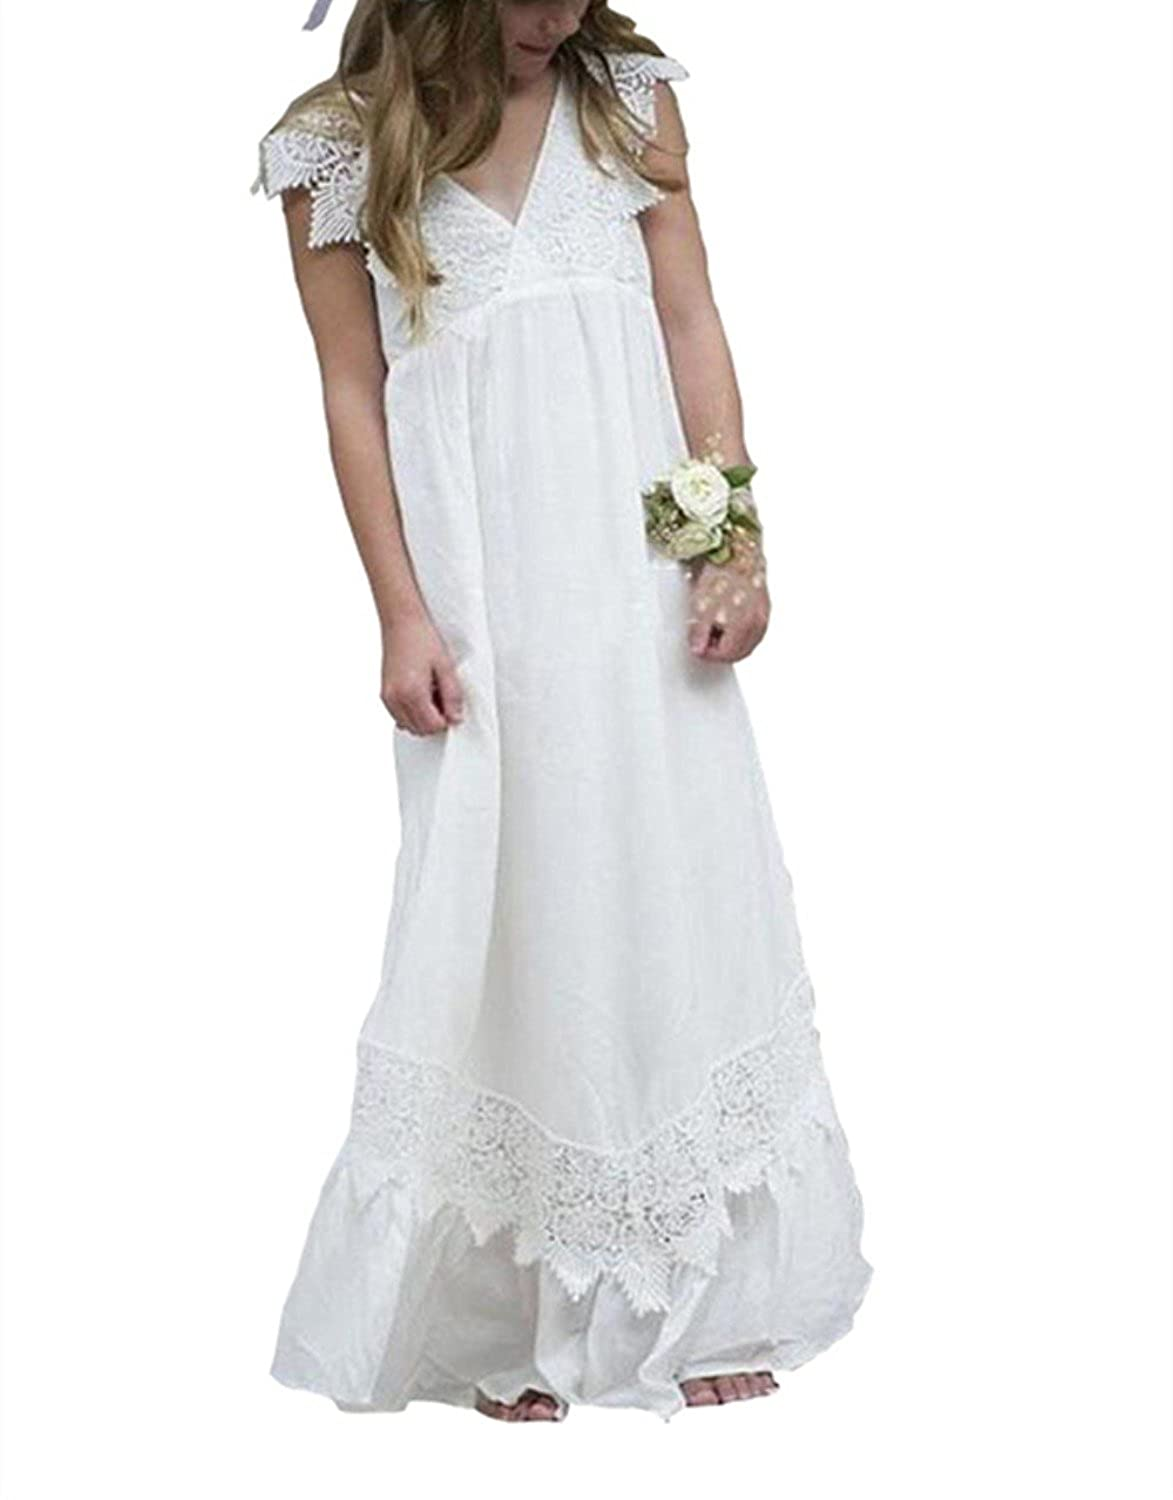 85ec1b1ce760 Amazon.com: YOUTODRE Boho Flower Girls Dresses for Wedding Beach Chiffon  Lace V Neck Country Gowns: Clothing